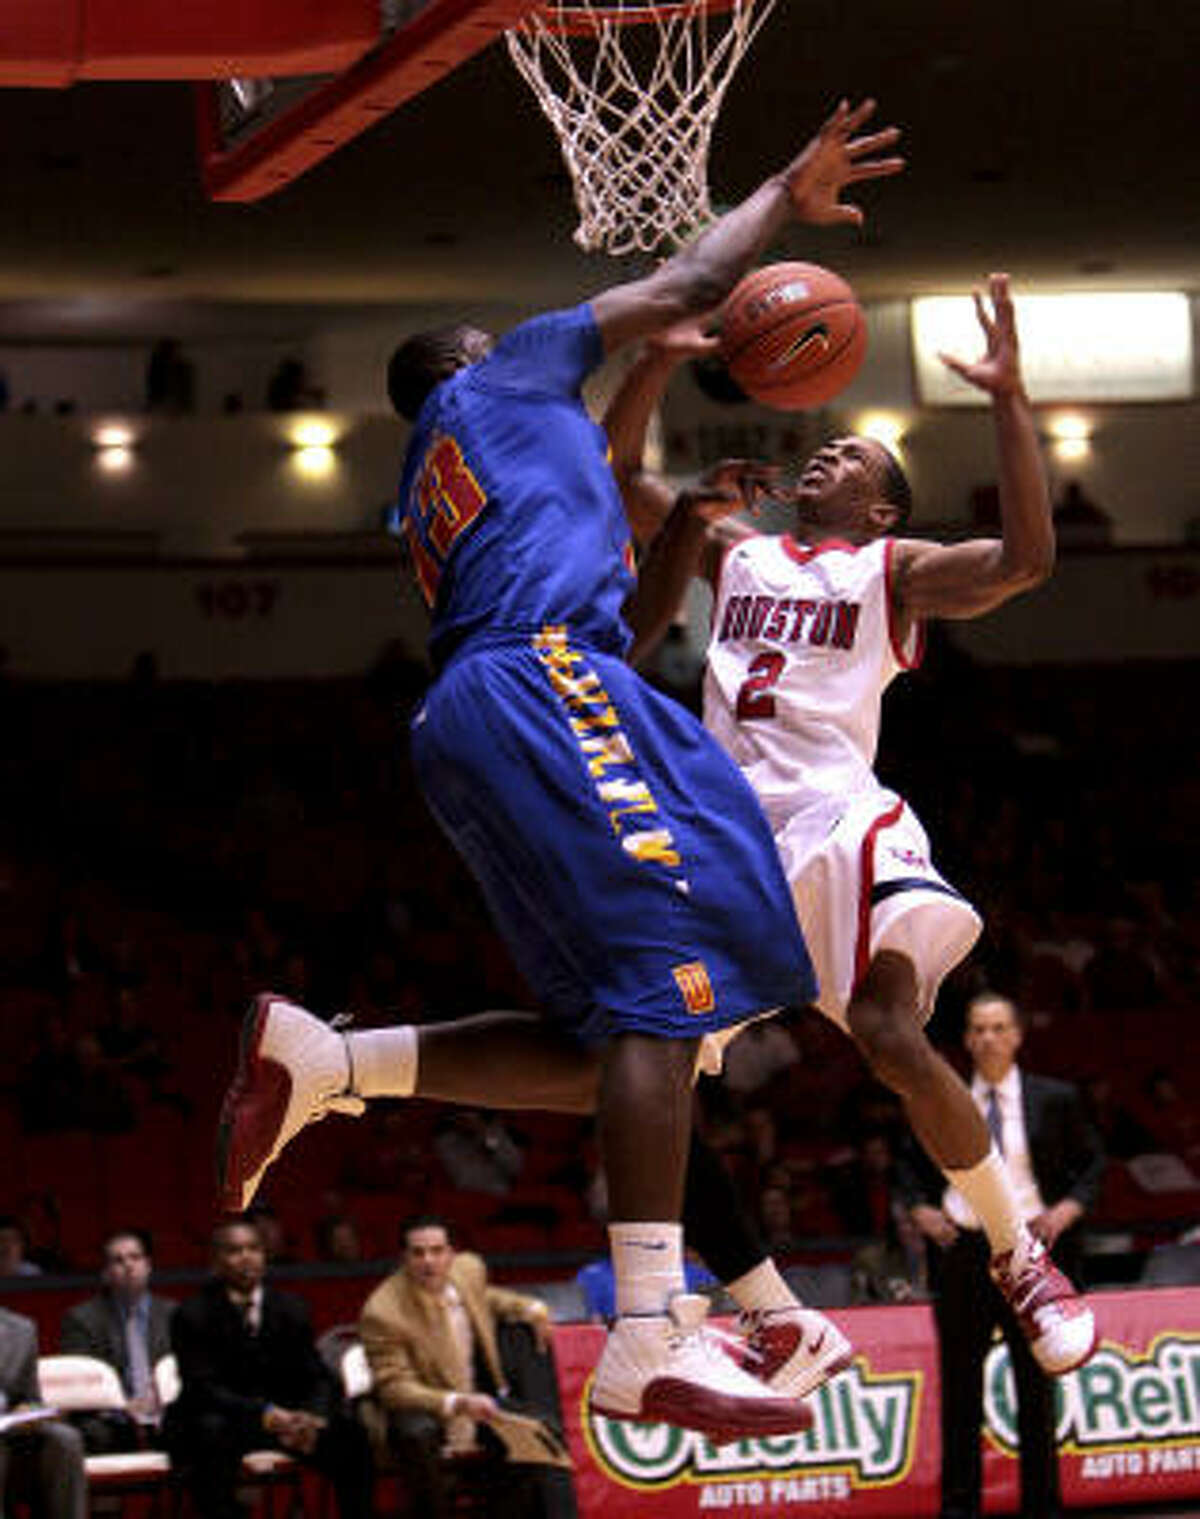 UH guard Zamal Nixon (2) takes a hard foul from Tulsa's Joe Richard as he drives to the basket during the first half.